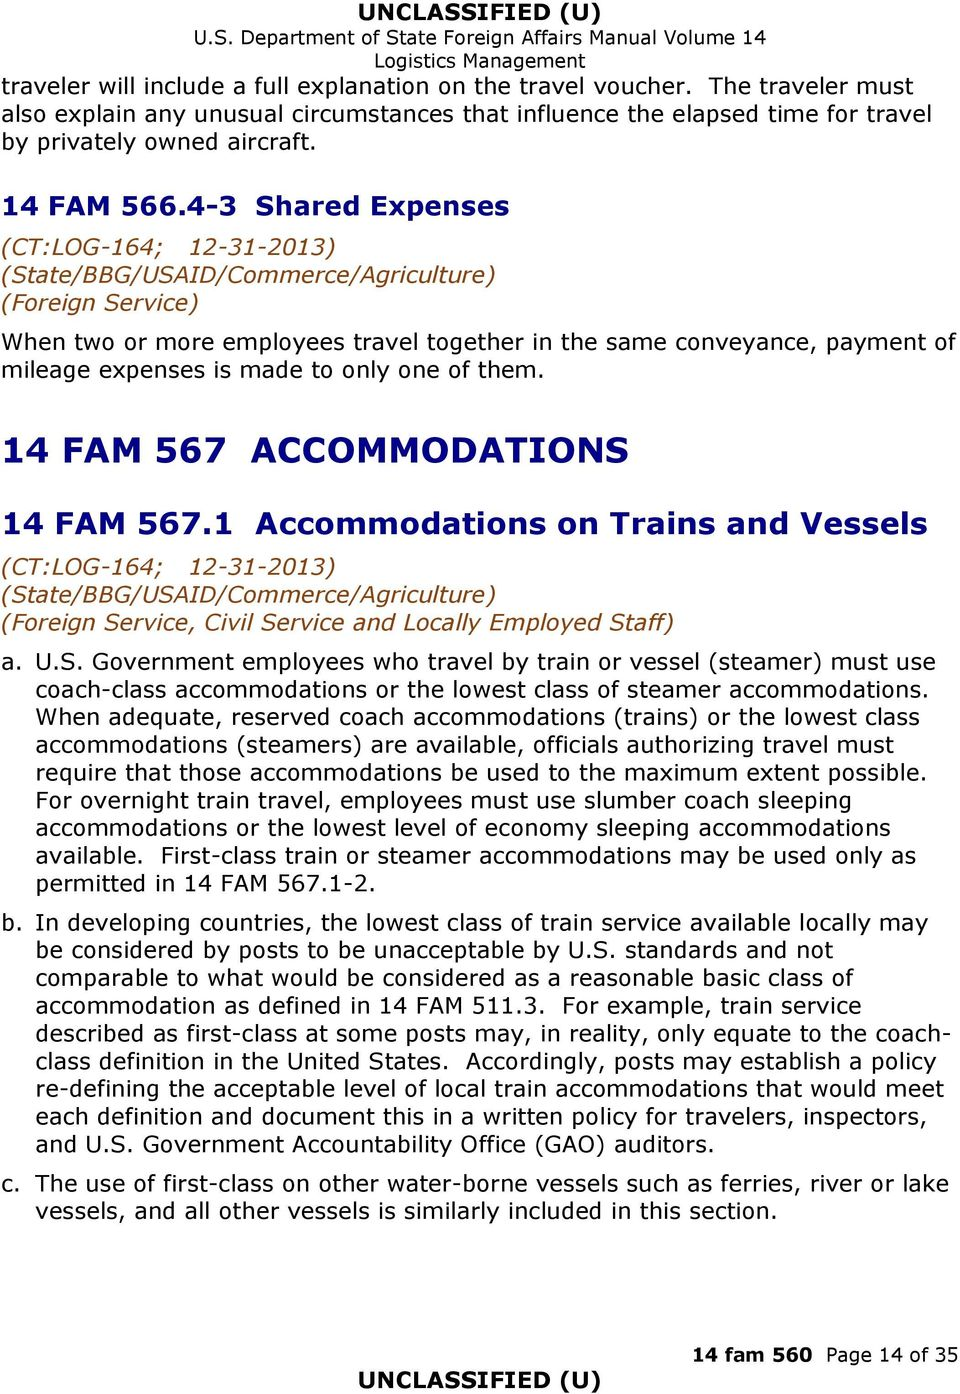 1 Accommodations on Trains and Vessels (Foreign Service, Civil Service and Locally Employed Staff) a. U.S. Government employees who travel by train or vessel (steamer) must use coach-class accommodations or the lowest class of steamer accommodations.